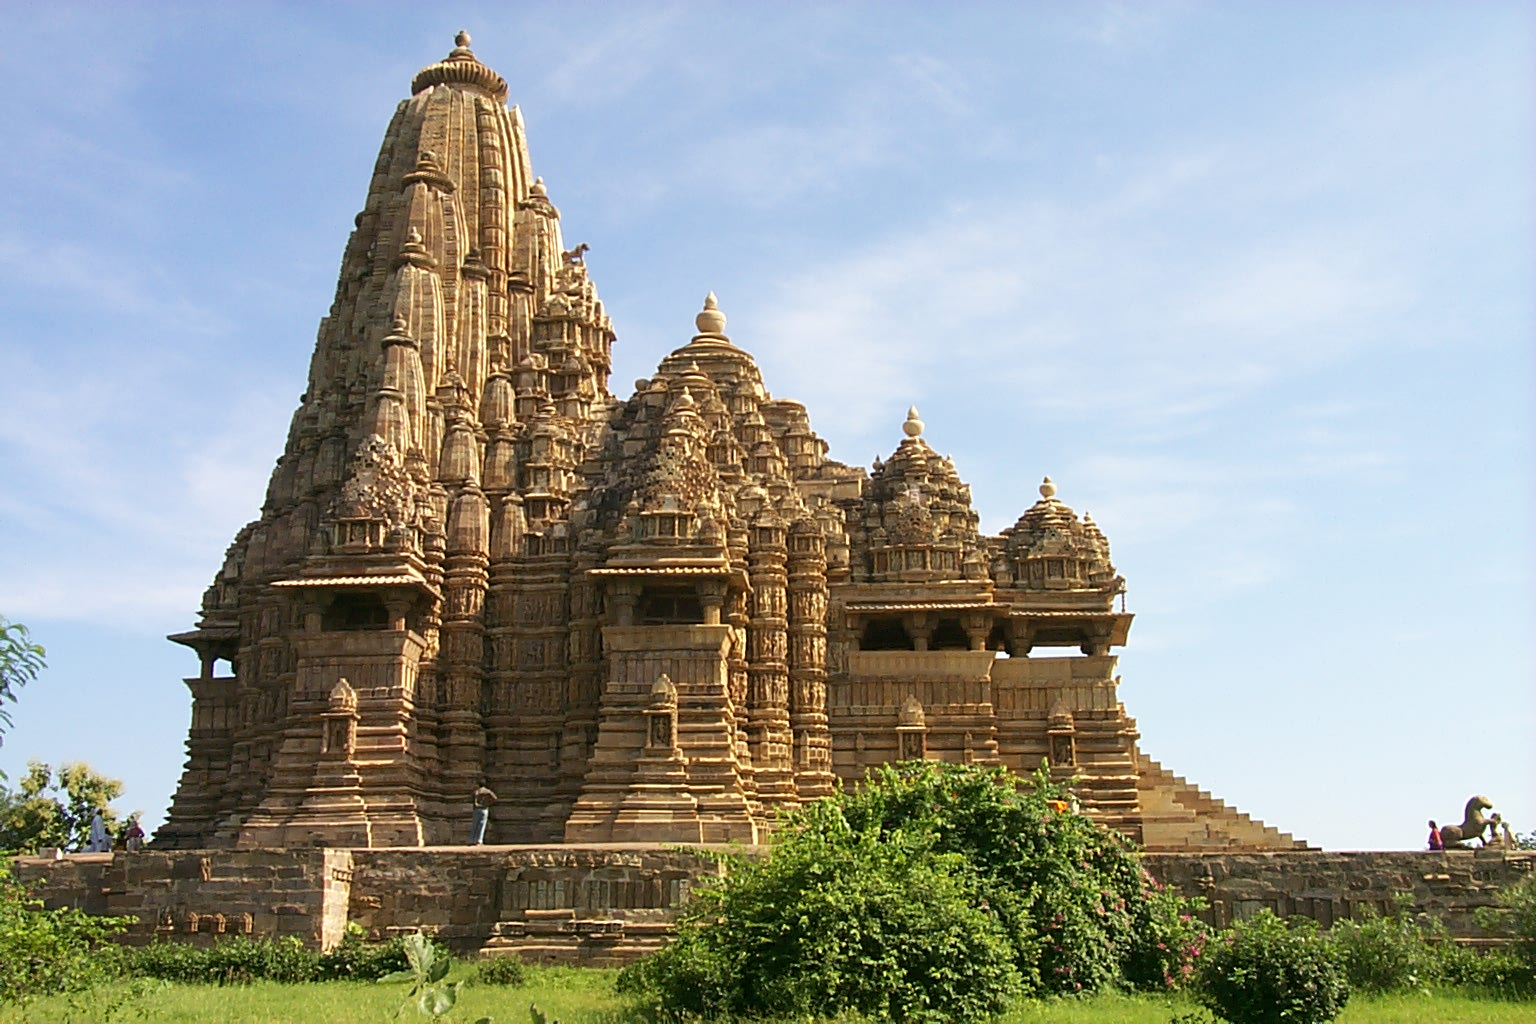 https://upload.wikimedia.org/wikipedia/commons/8/89/Khajuraho_-_Kandariya_Mahadeo_Temple.jpg